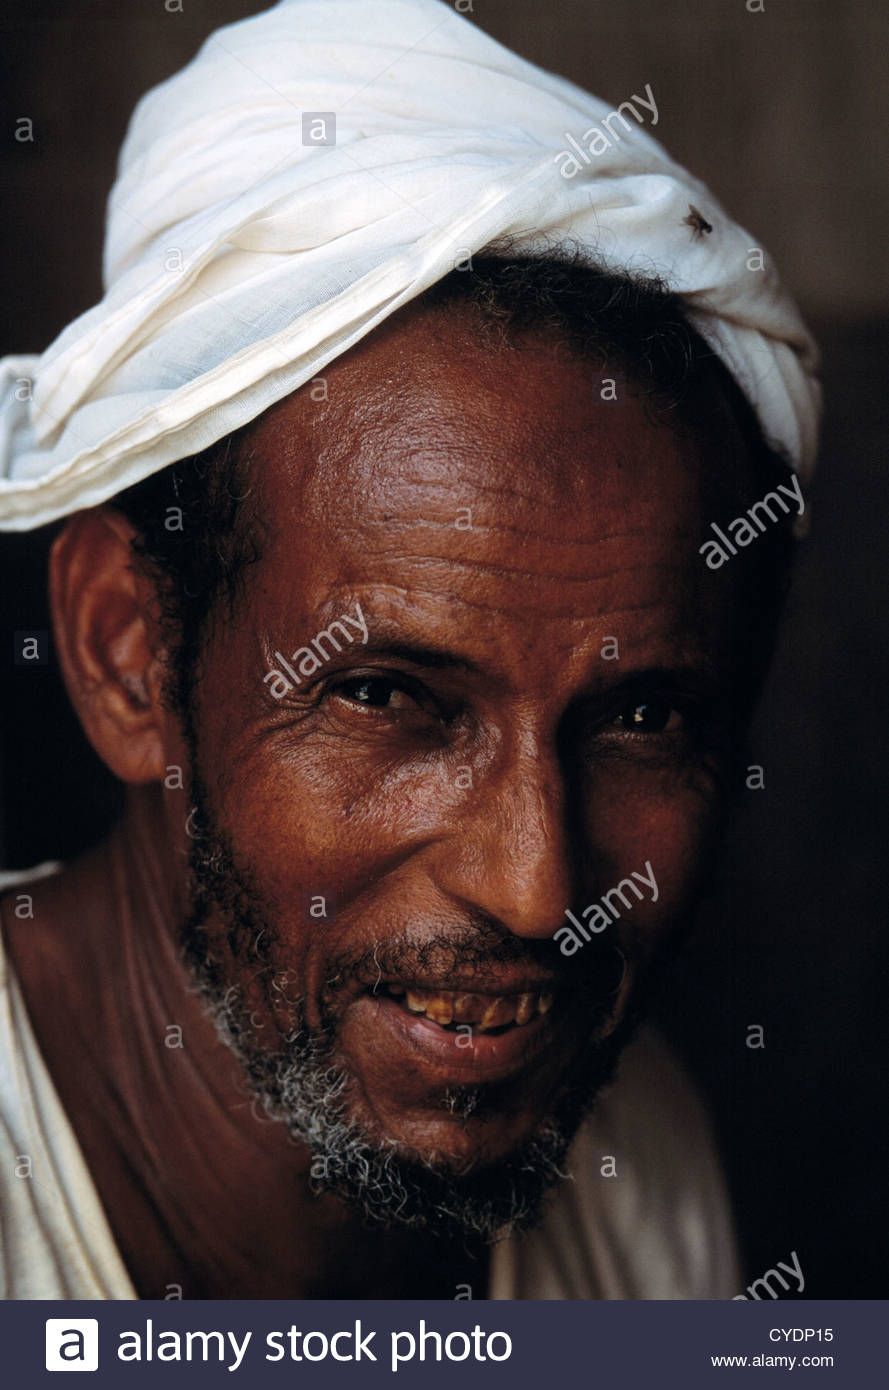 A portrait of a tobacco farmer near Al Ghuraf in Yemen. - Stock Image